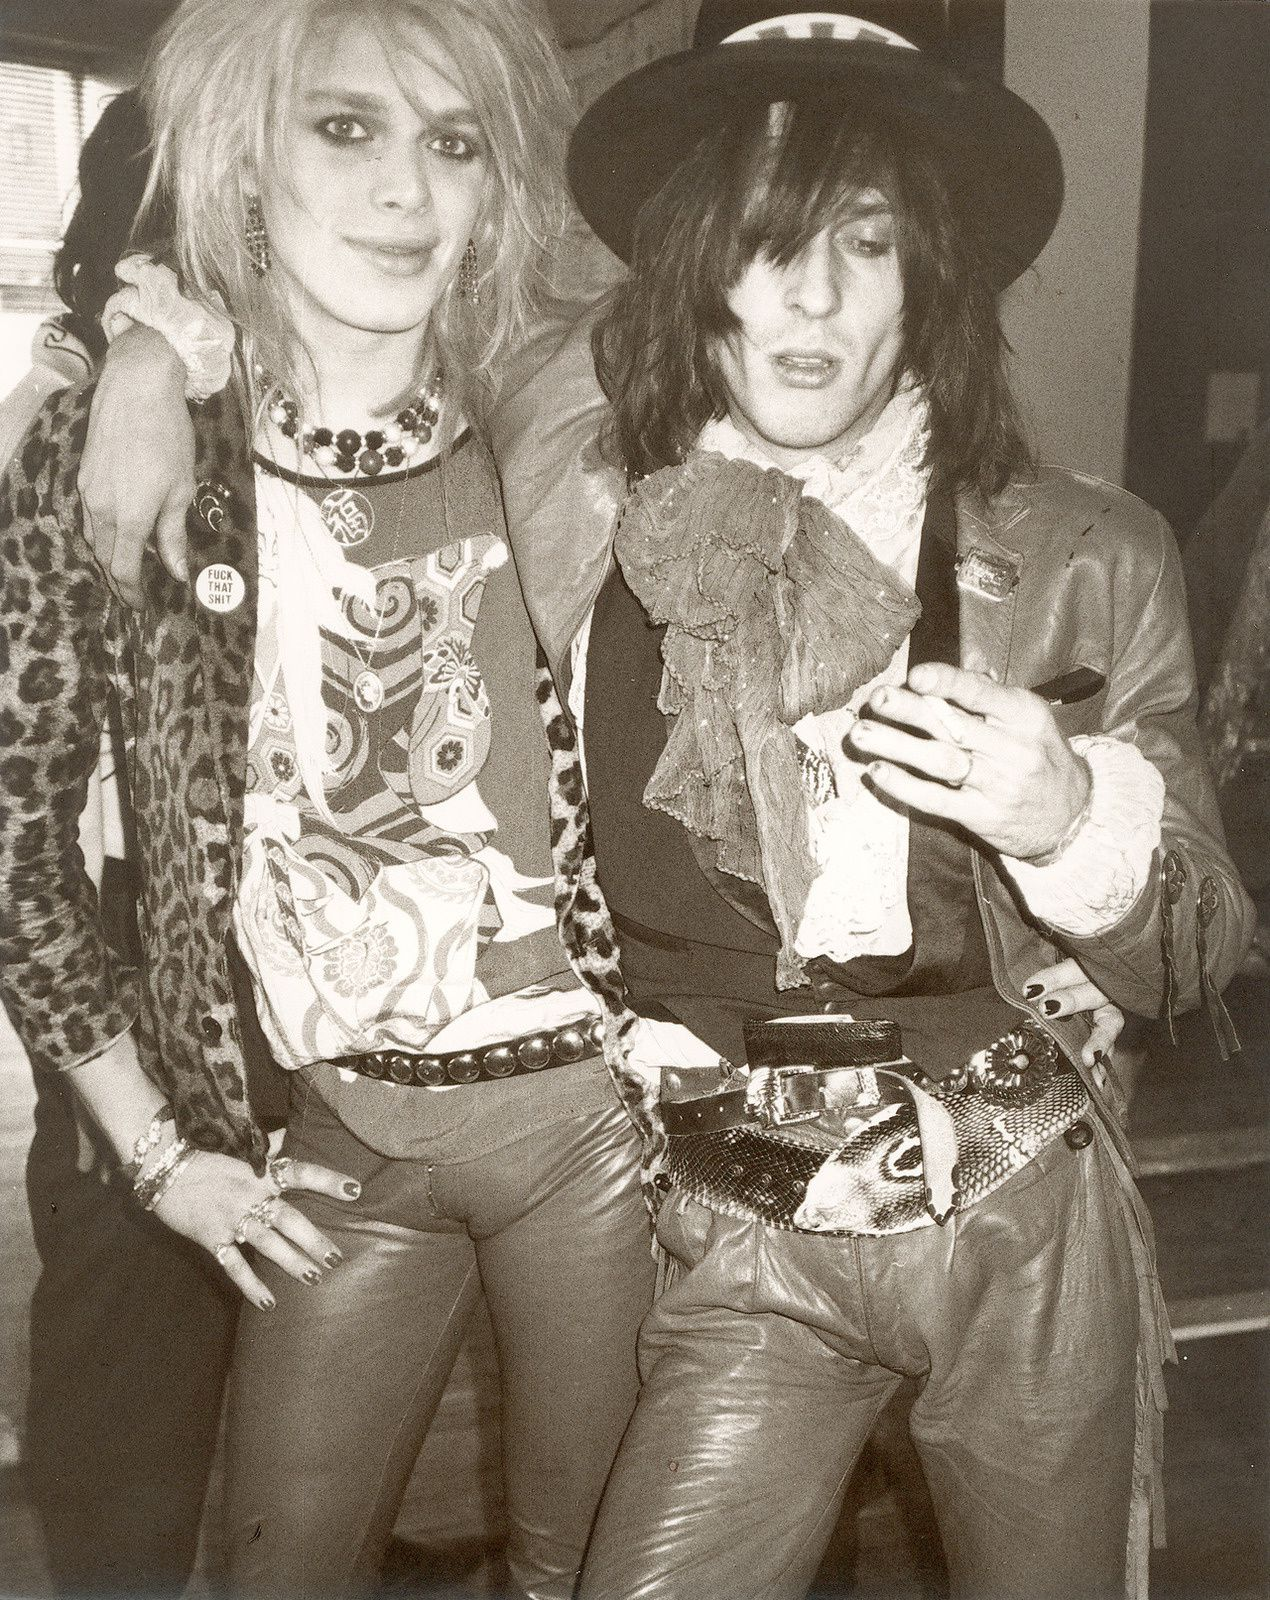 Michael Monroe and Andy McCoy (Hanoi Rocks) by Andy Warhol